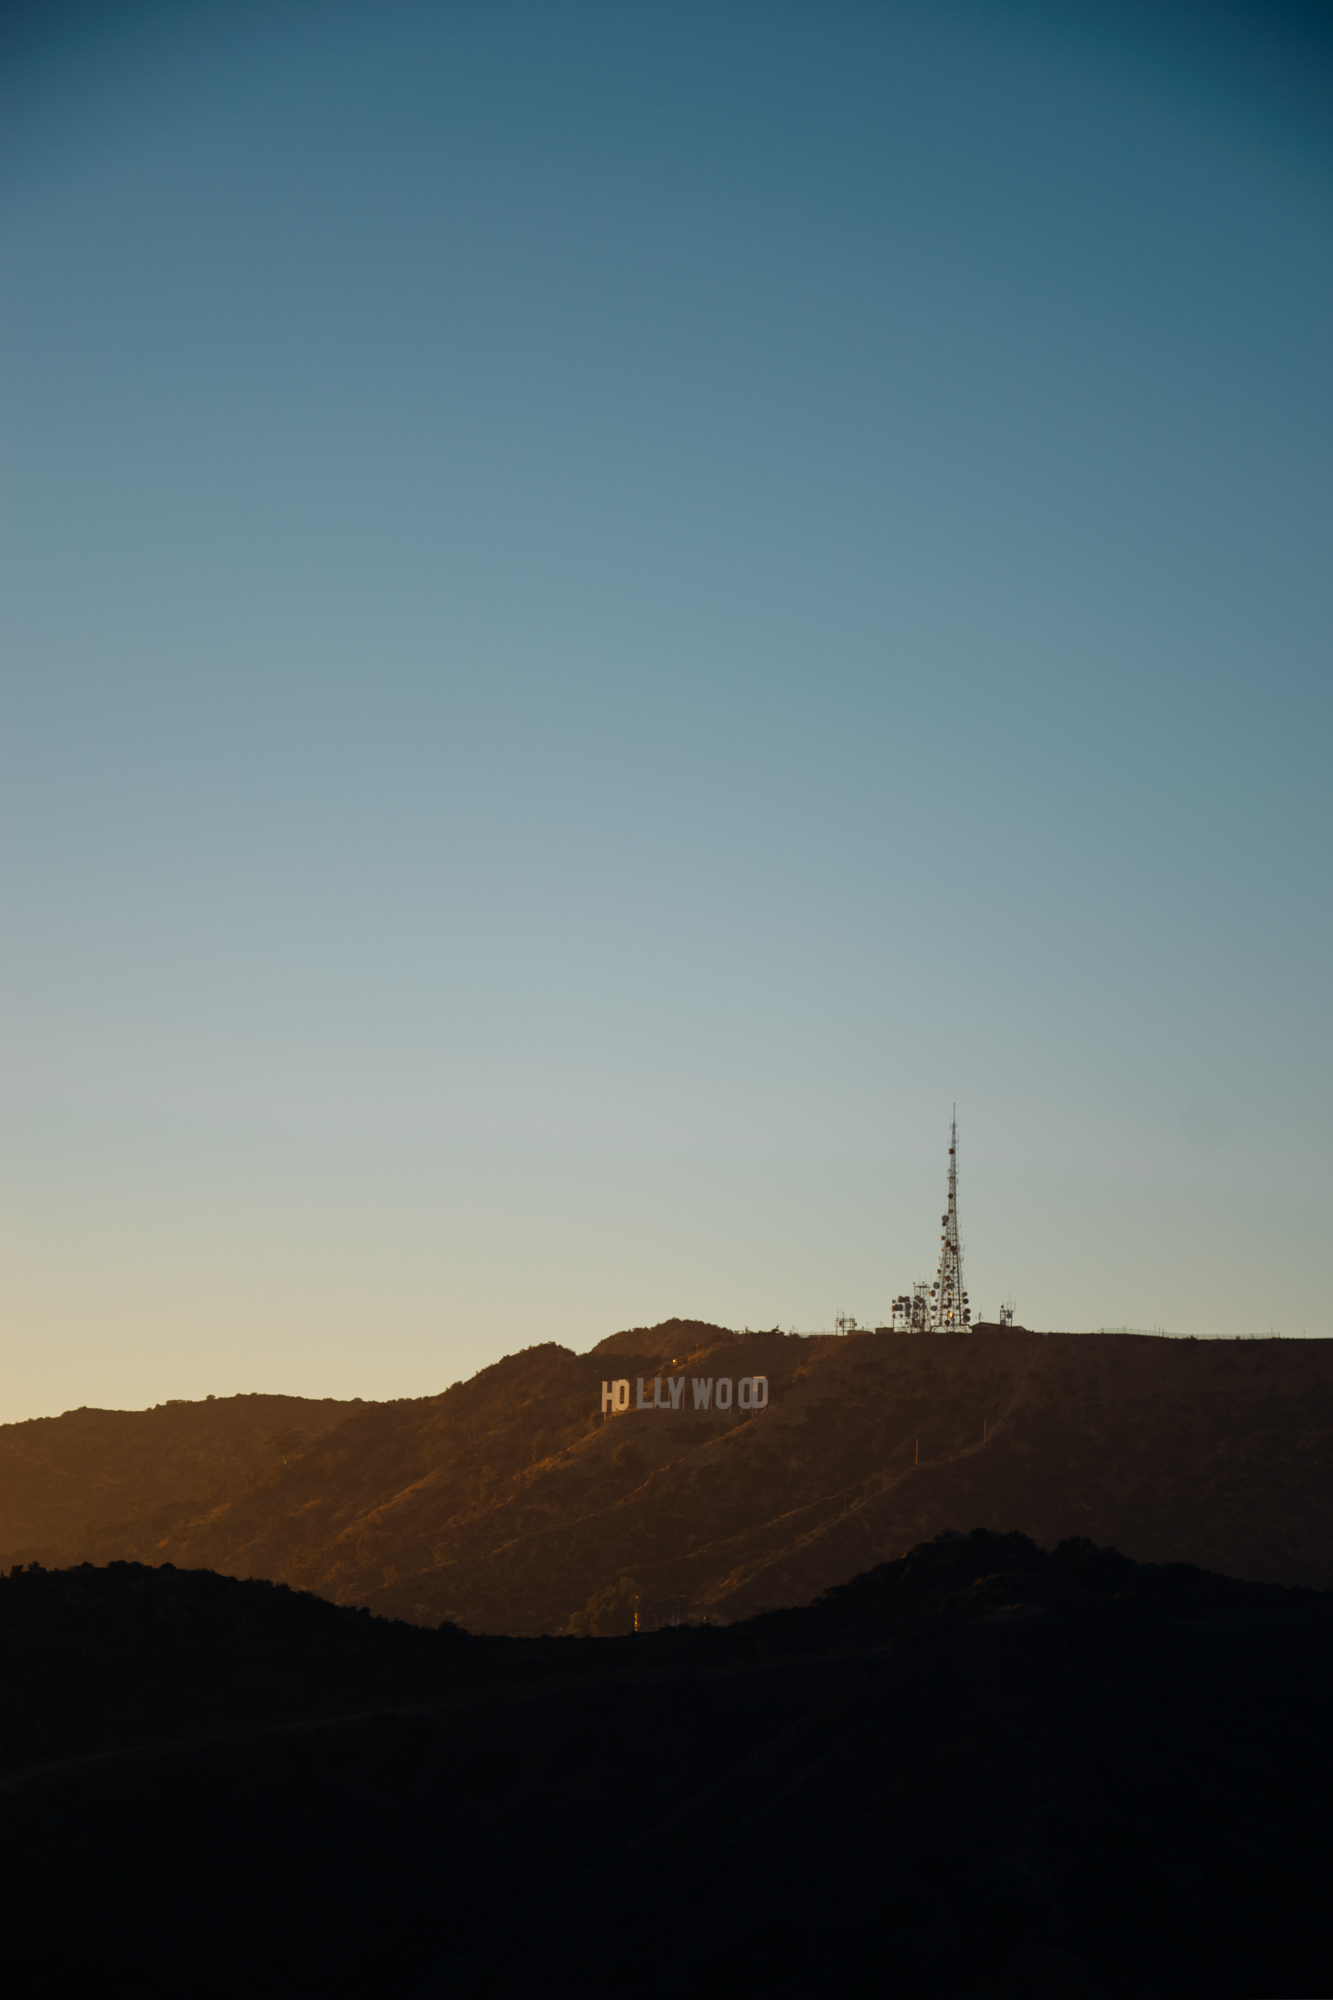 Hollywood Los Angeles California USA 2018 | A Beautiful Distraction by Ruo Ling Lu